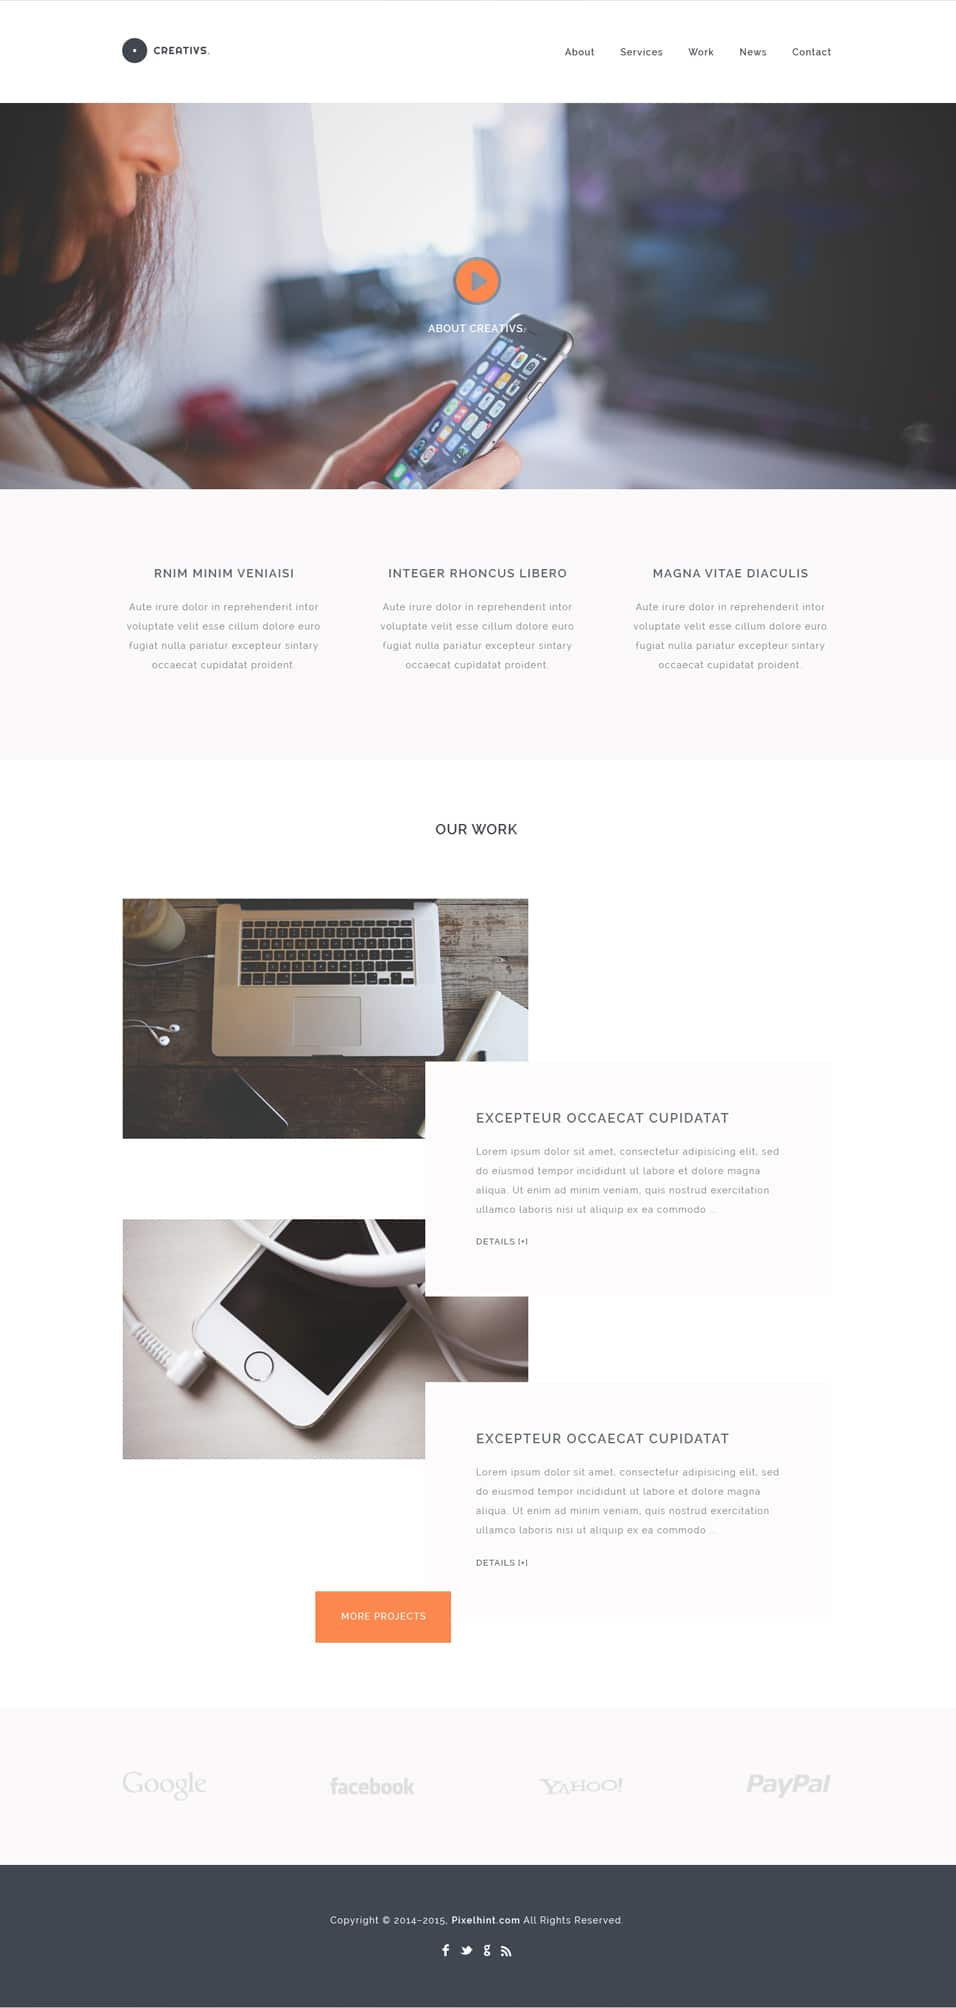 Creativs – Free Complete Website Template (PSD & HTML5)